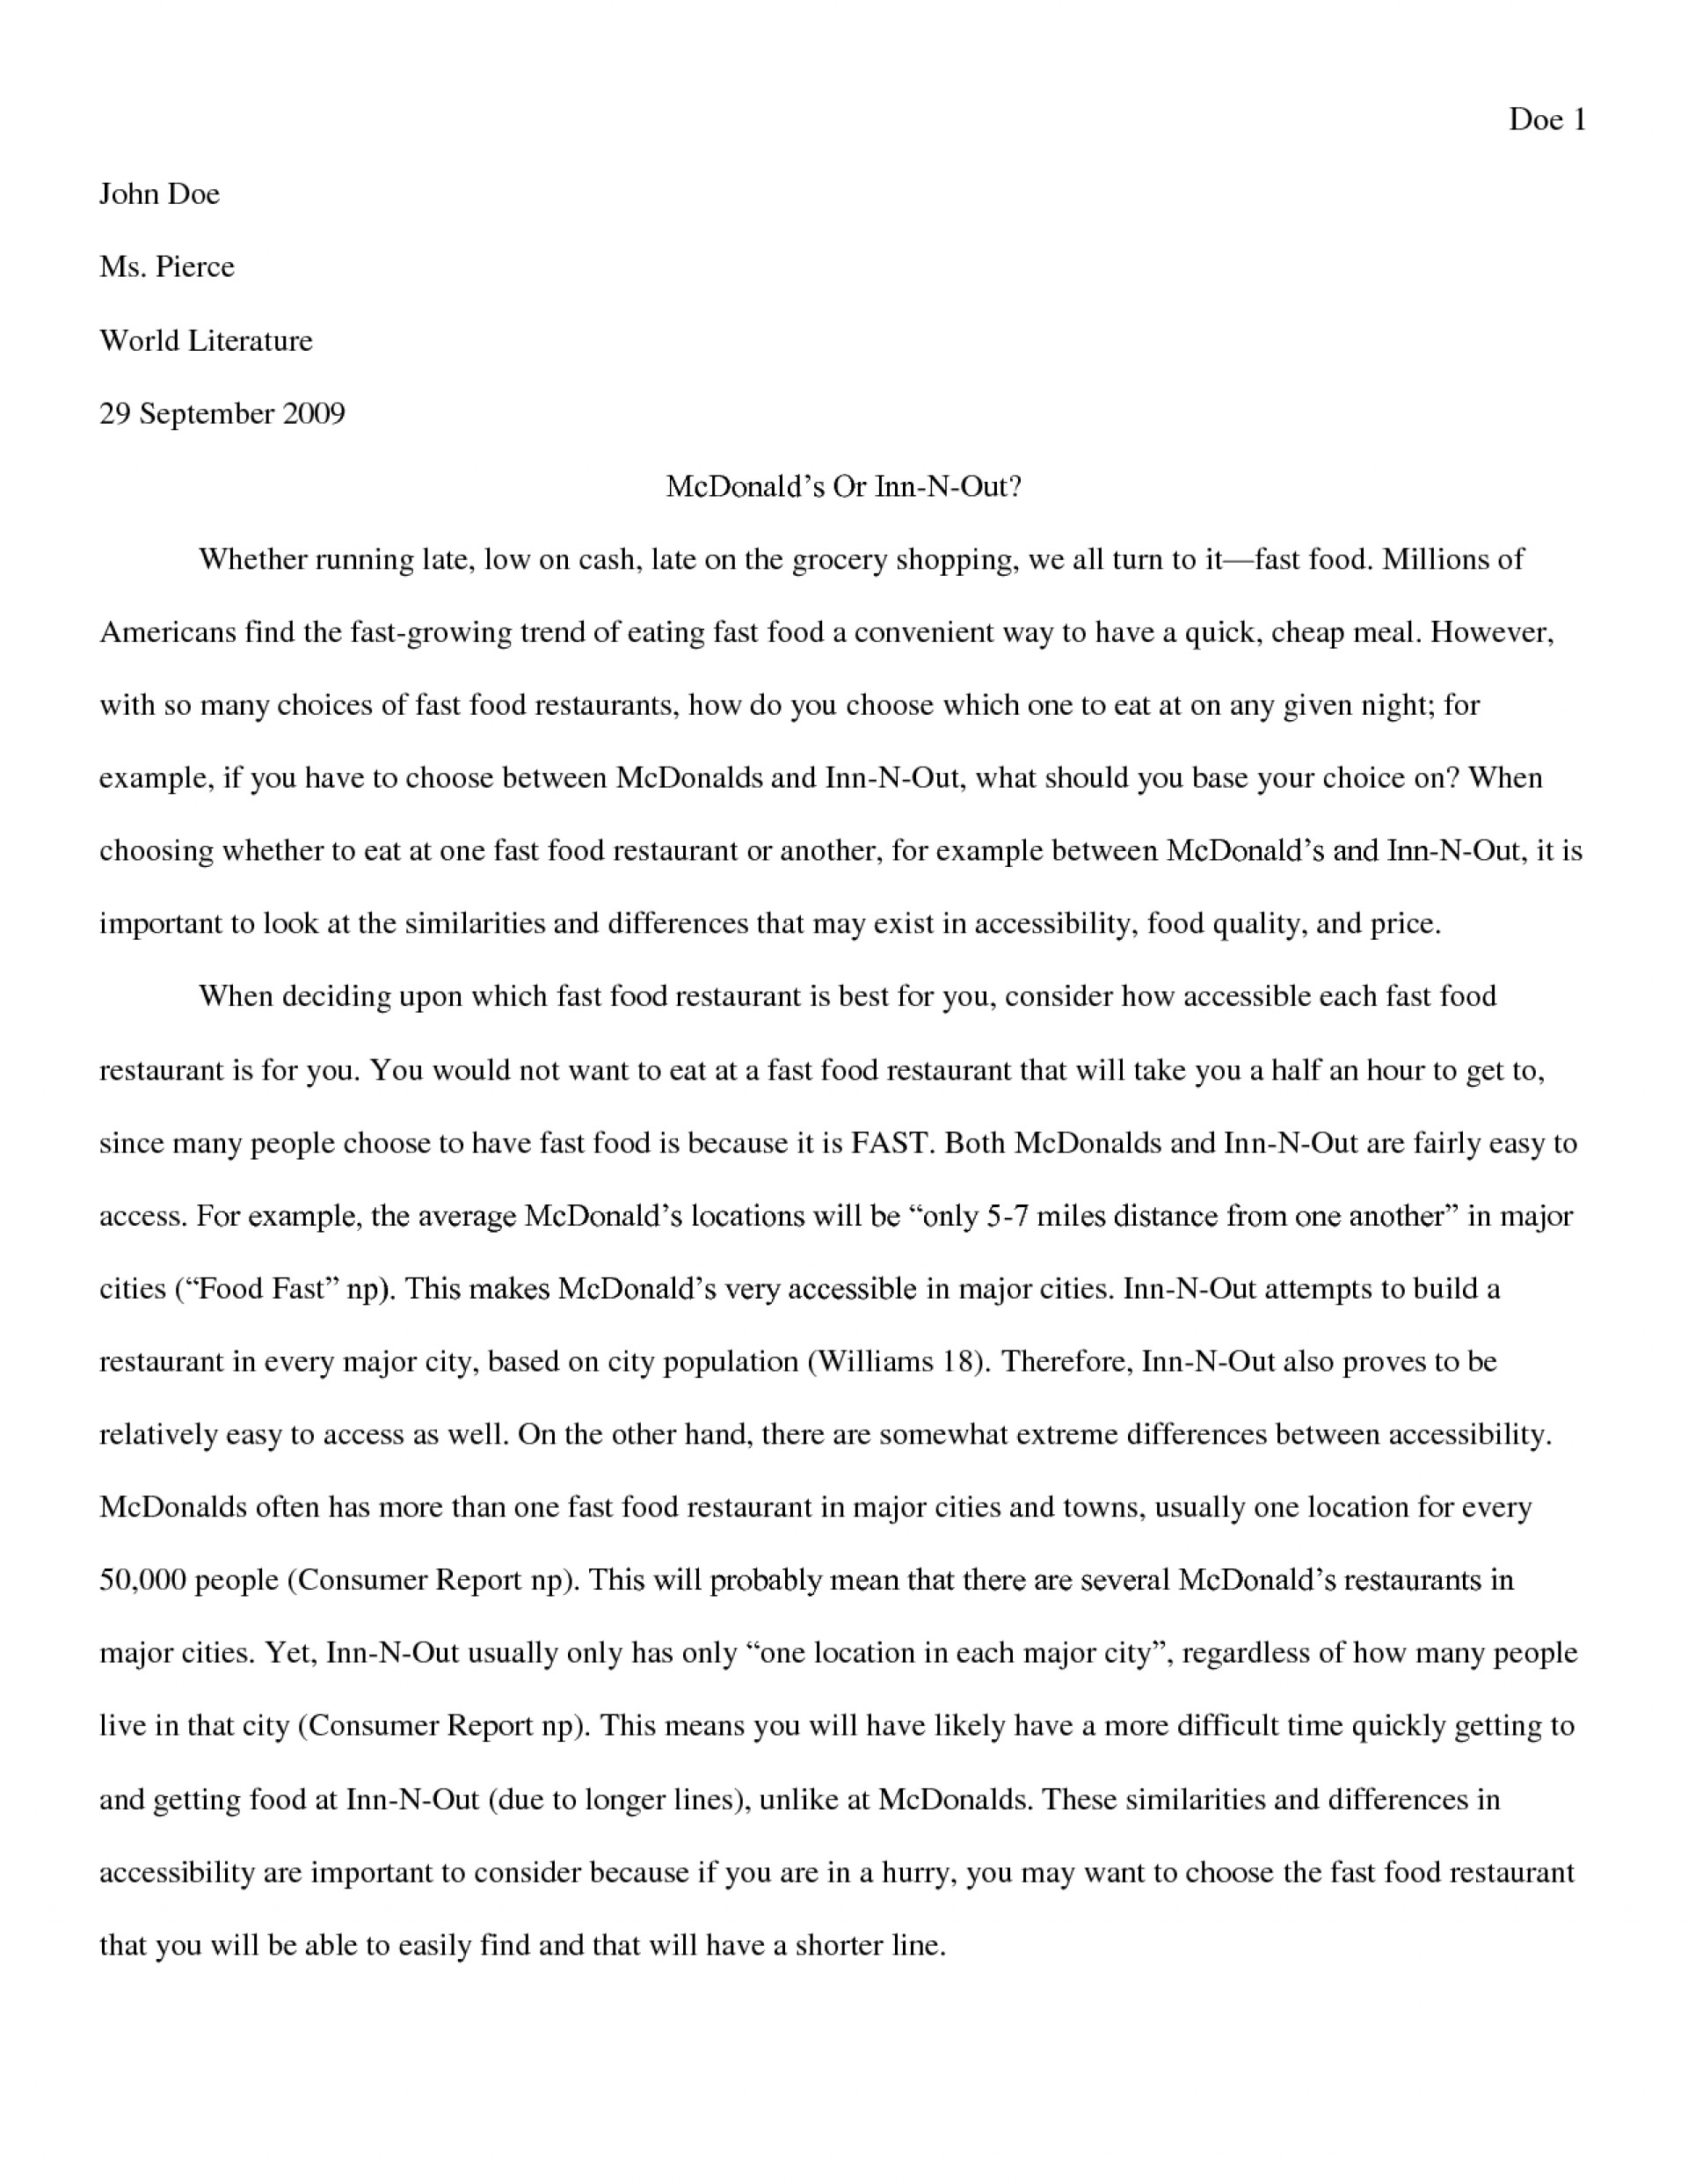 009 Essay Example High School Sample Papers 526023 Examples Unique For Personal Statement Essays 5 Paragraph Argumentative Tagalog 1920